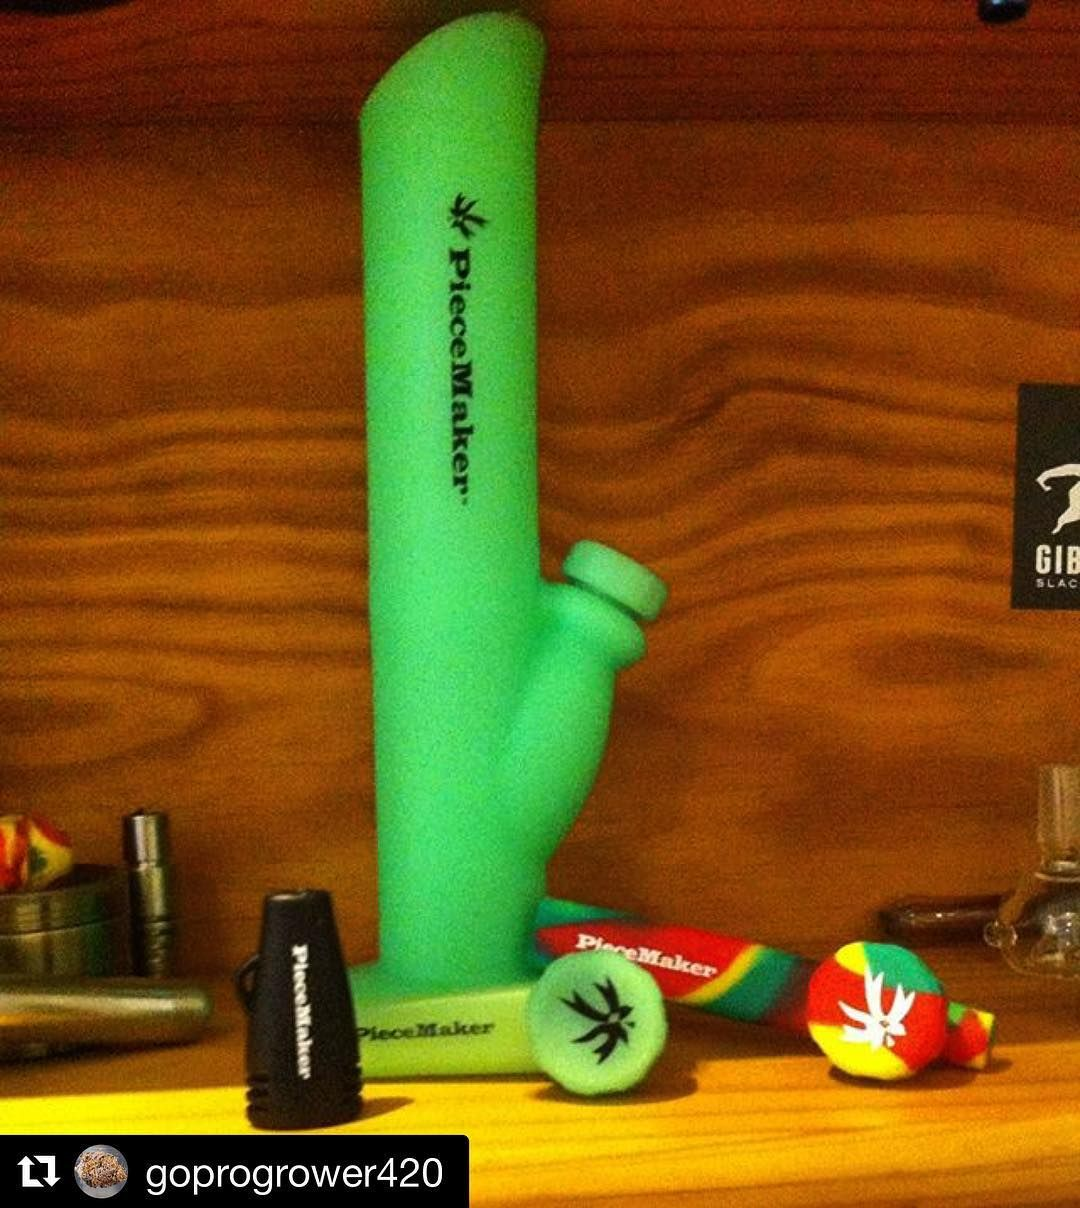 @goprogrower420 with @repostapp  The Entire Range of Silicone Pieces  Thanks to @piecemakergear - Kwiki 1hit key ring pipe (Black) - Karma small side clutch pipe (Green) - Kazili pipe with front clutch (RastaRed) - Silicone Bong (Glow Green)  Blaze YOUR own trail & tag us in you pics and we will repost #piecemakergear.com #piecemaker #BlazeYourOwnTrail #byot #siliconewaterpipe #cannabiscup #hightimes #420 #budtender #orshow #outdoorgear #dopecup #siliconebongs #champstradeshow #siliconebong…